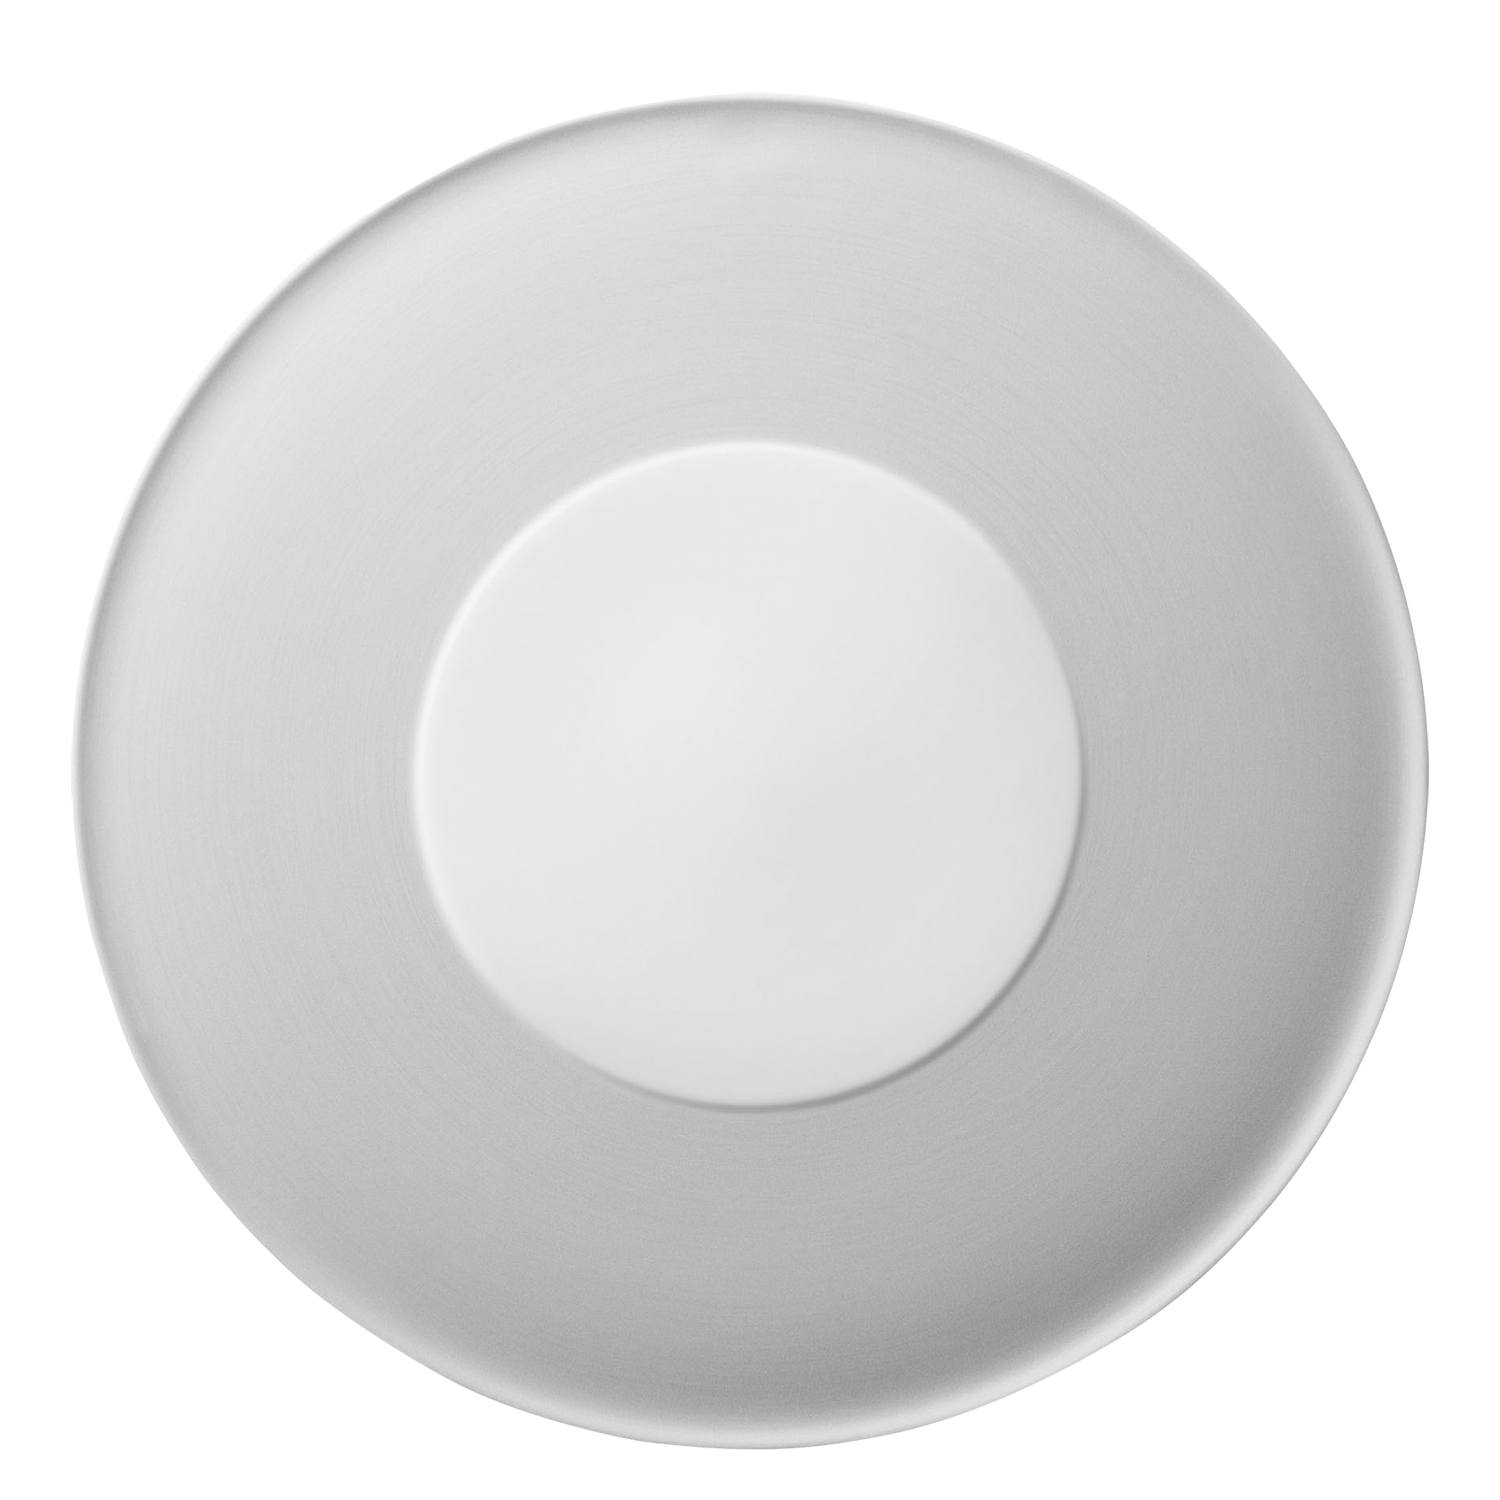 Plate flat with raised center part